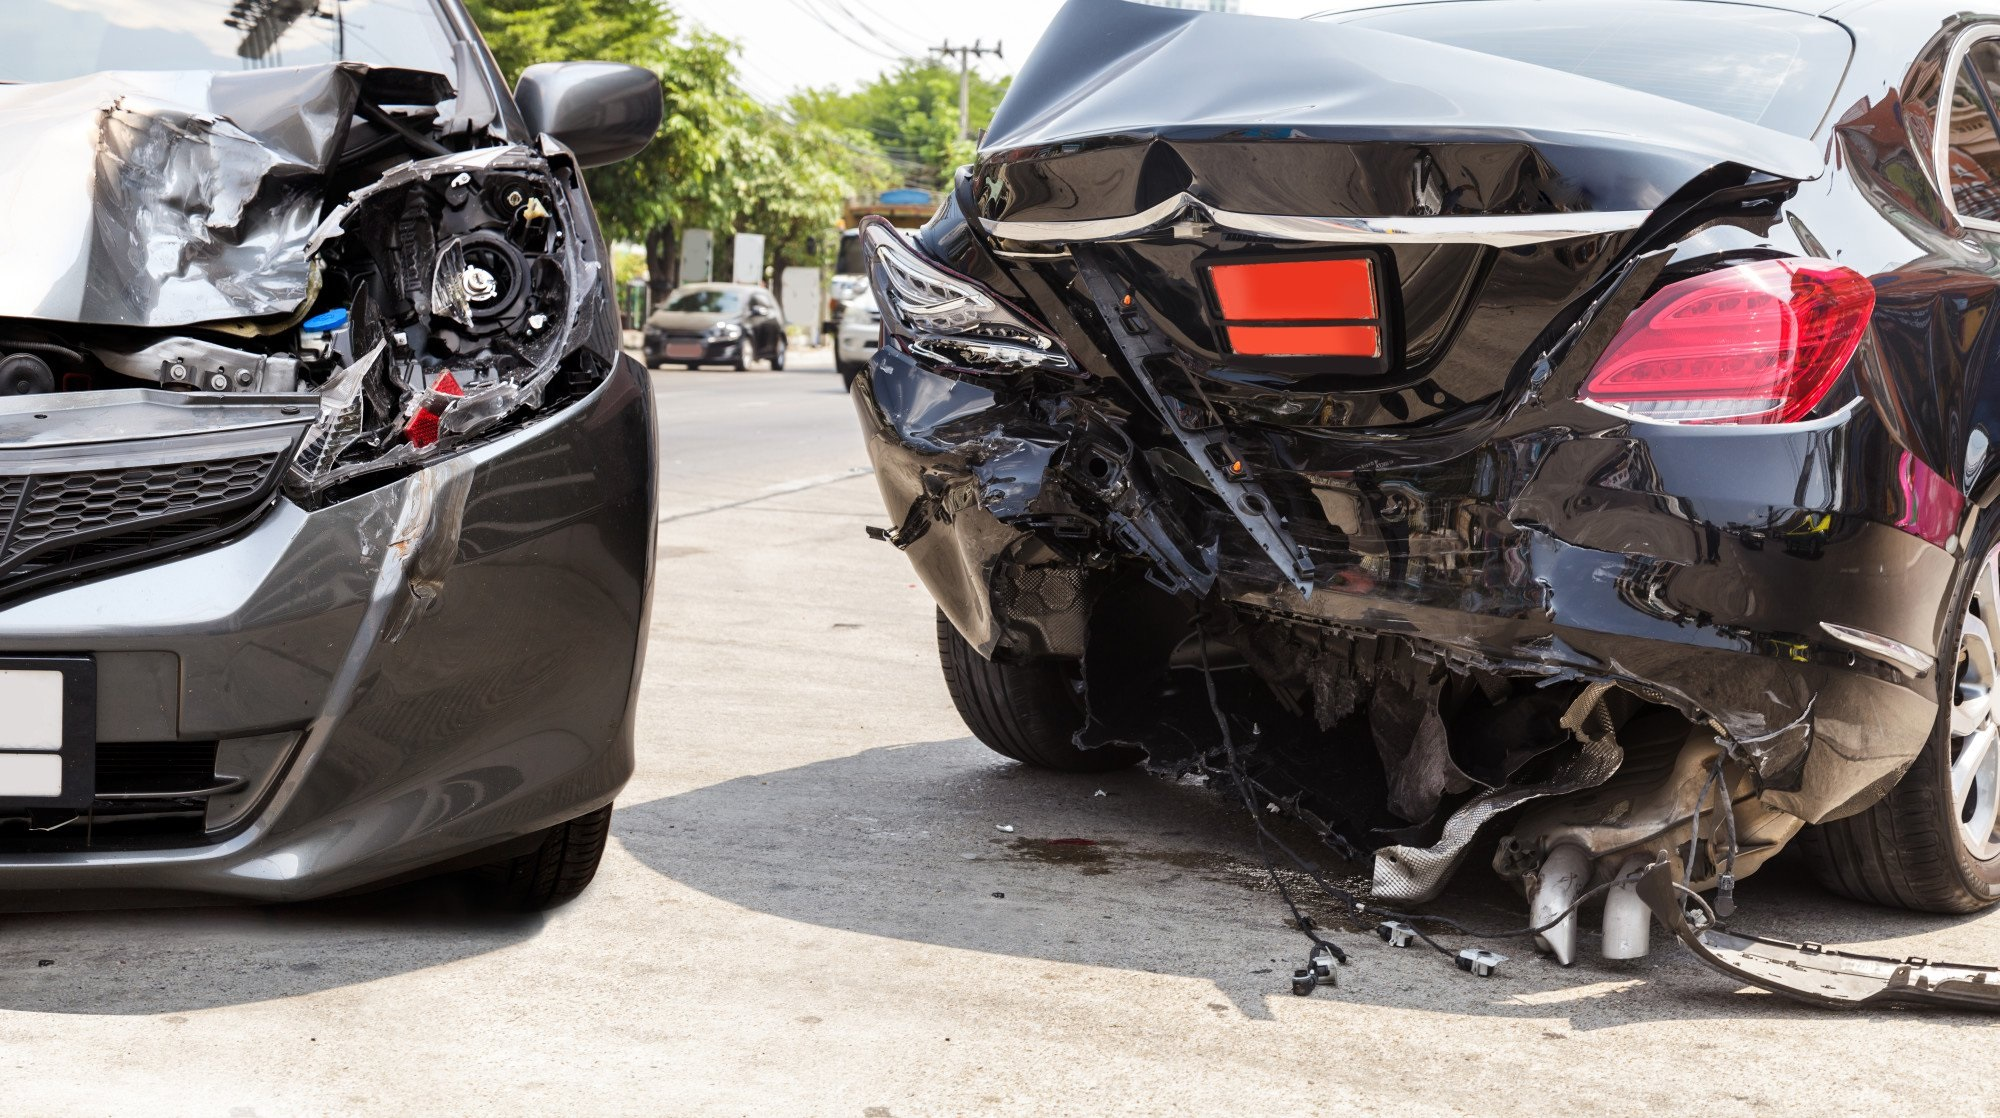 How To Make Cash From a Totaled Vehicle